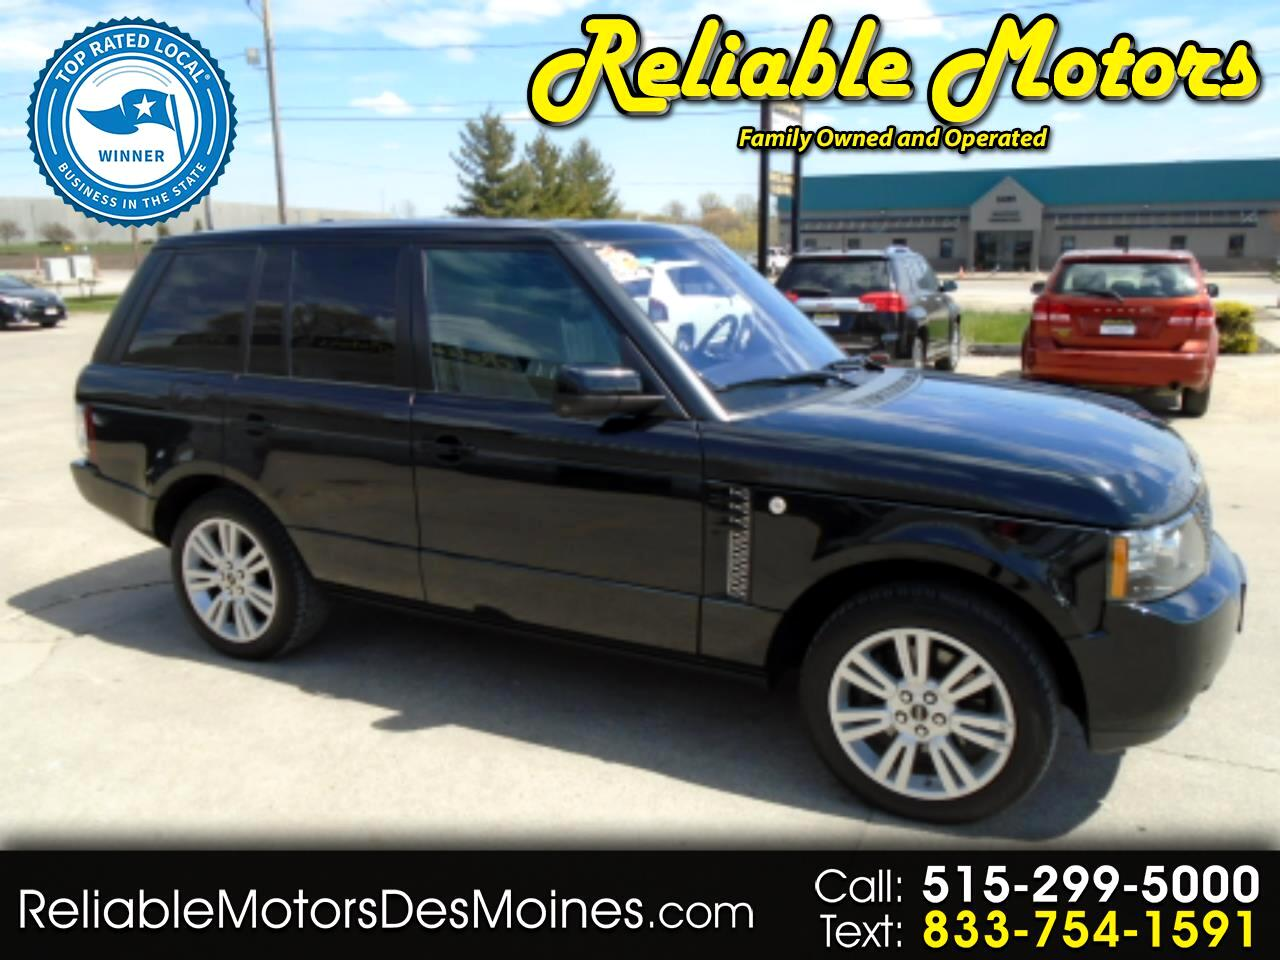 Land Rover Range Rover 4WD 4dr HSE LUX 2012